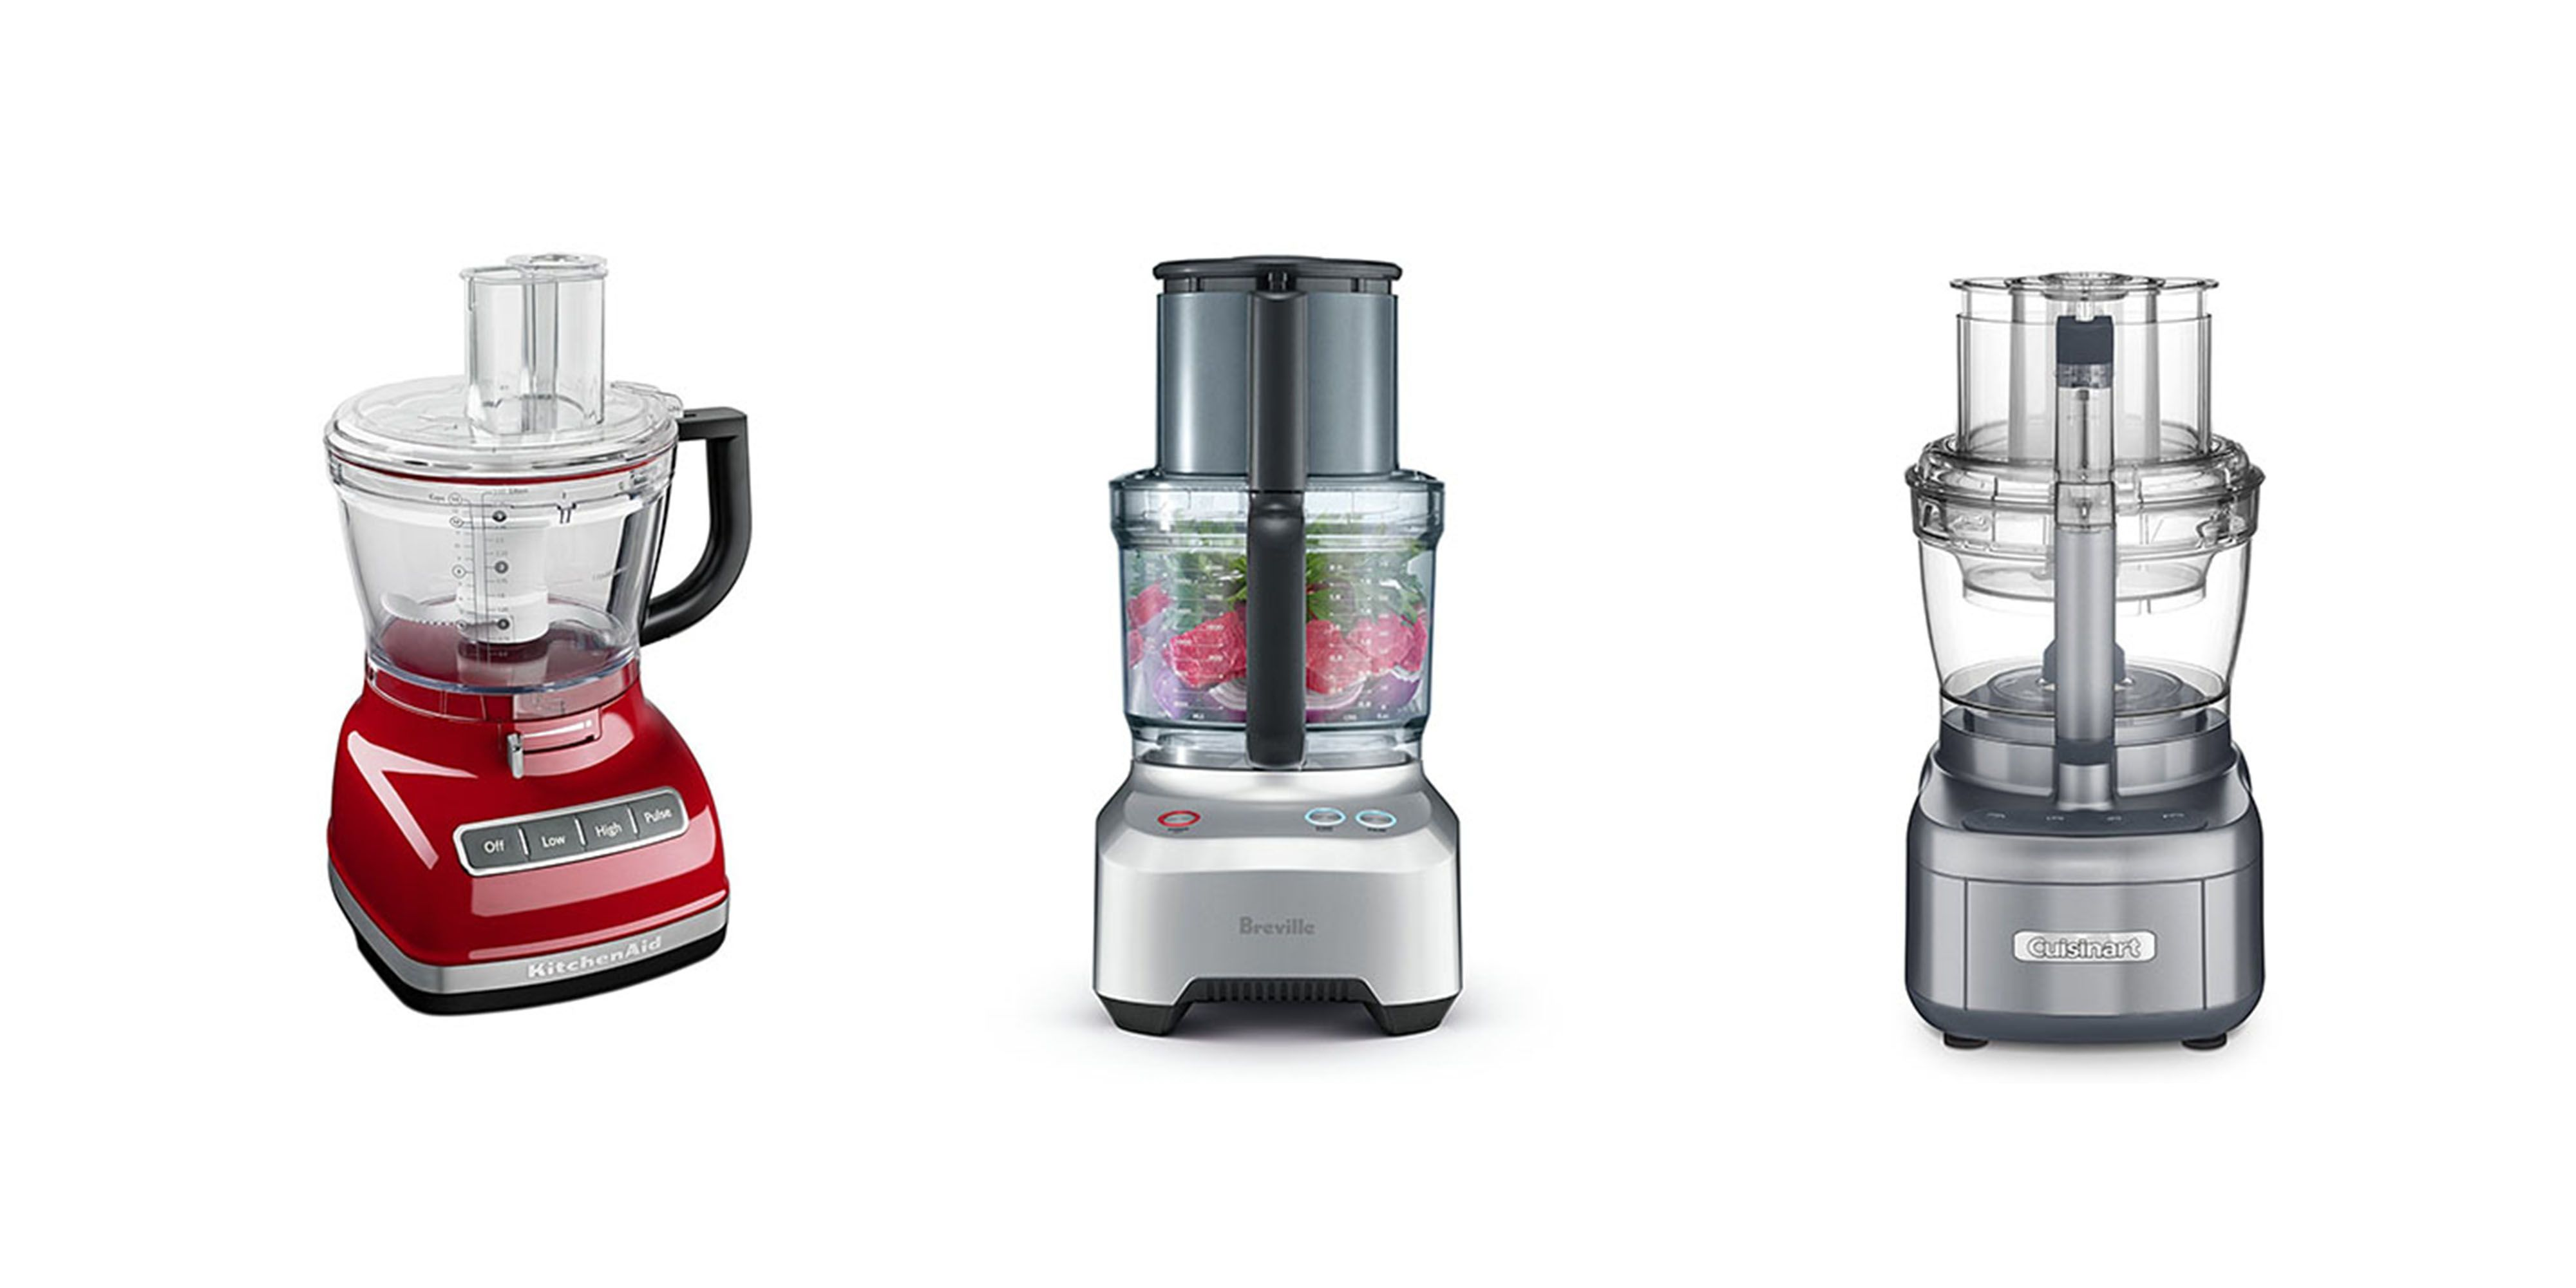 7 Best Food Processors - Reviews of Top Food Choppers